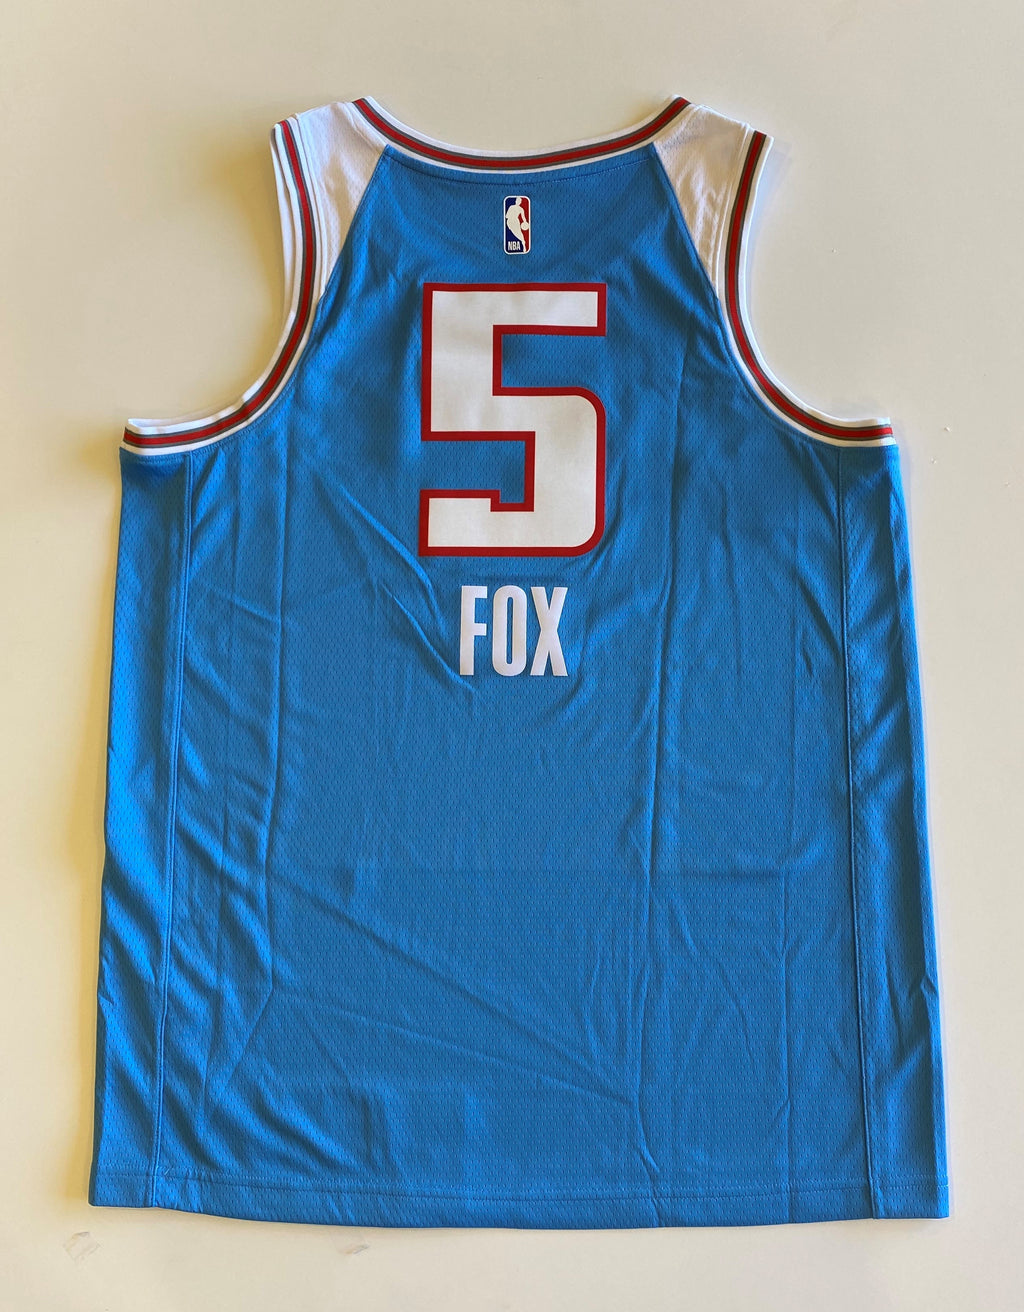 De'Aaron Fox SACTOWN Jersey . Inspired by Nike's Authentic jersey, Size 48, Blue